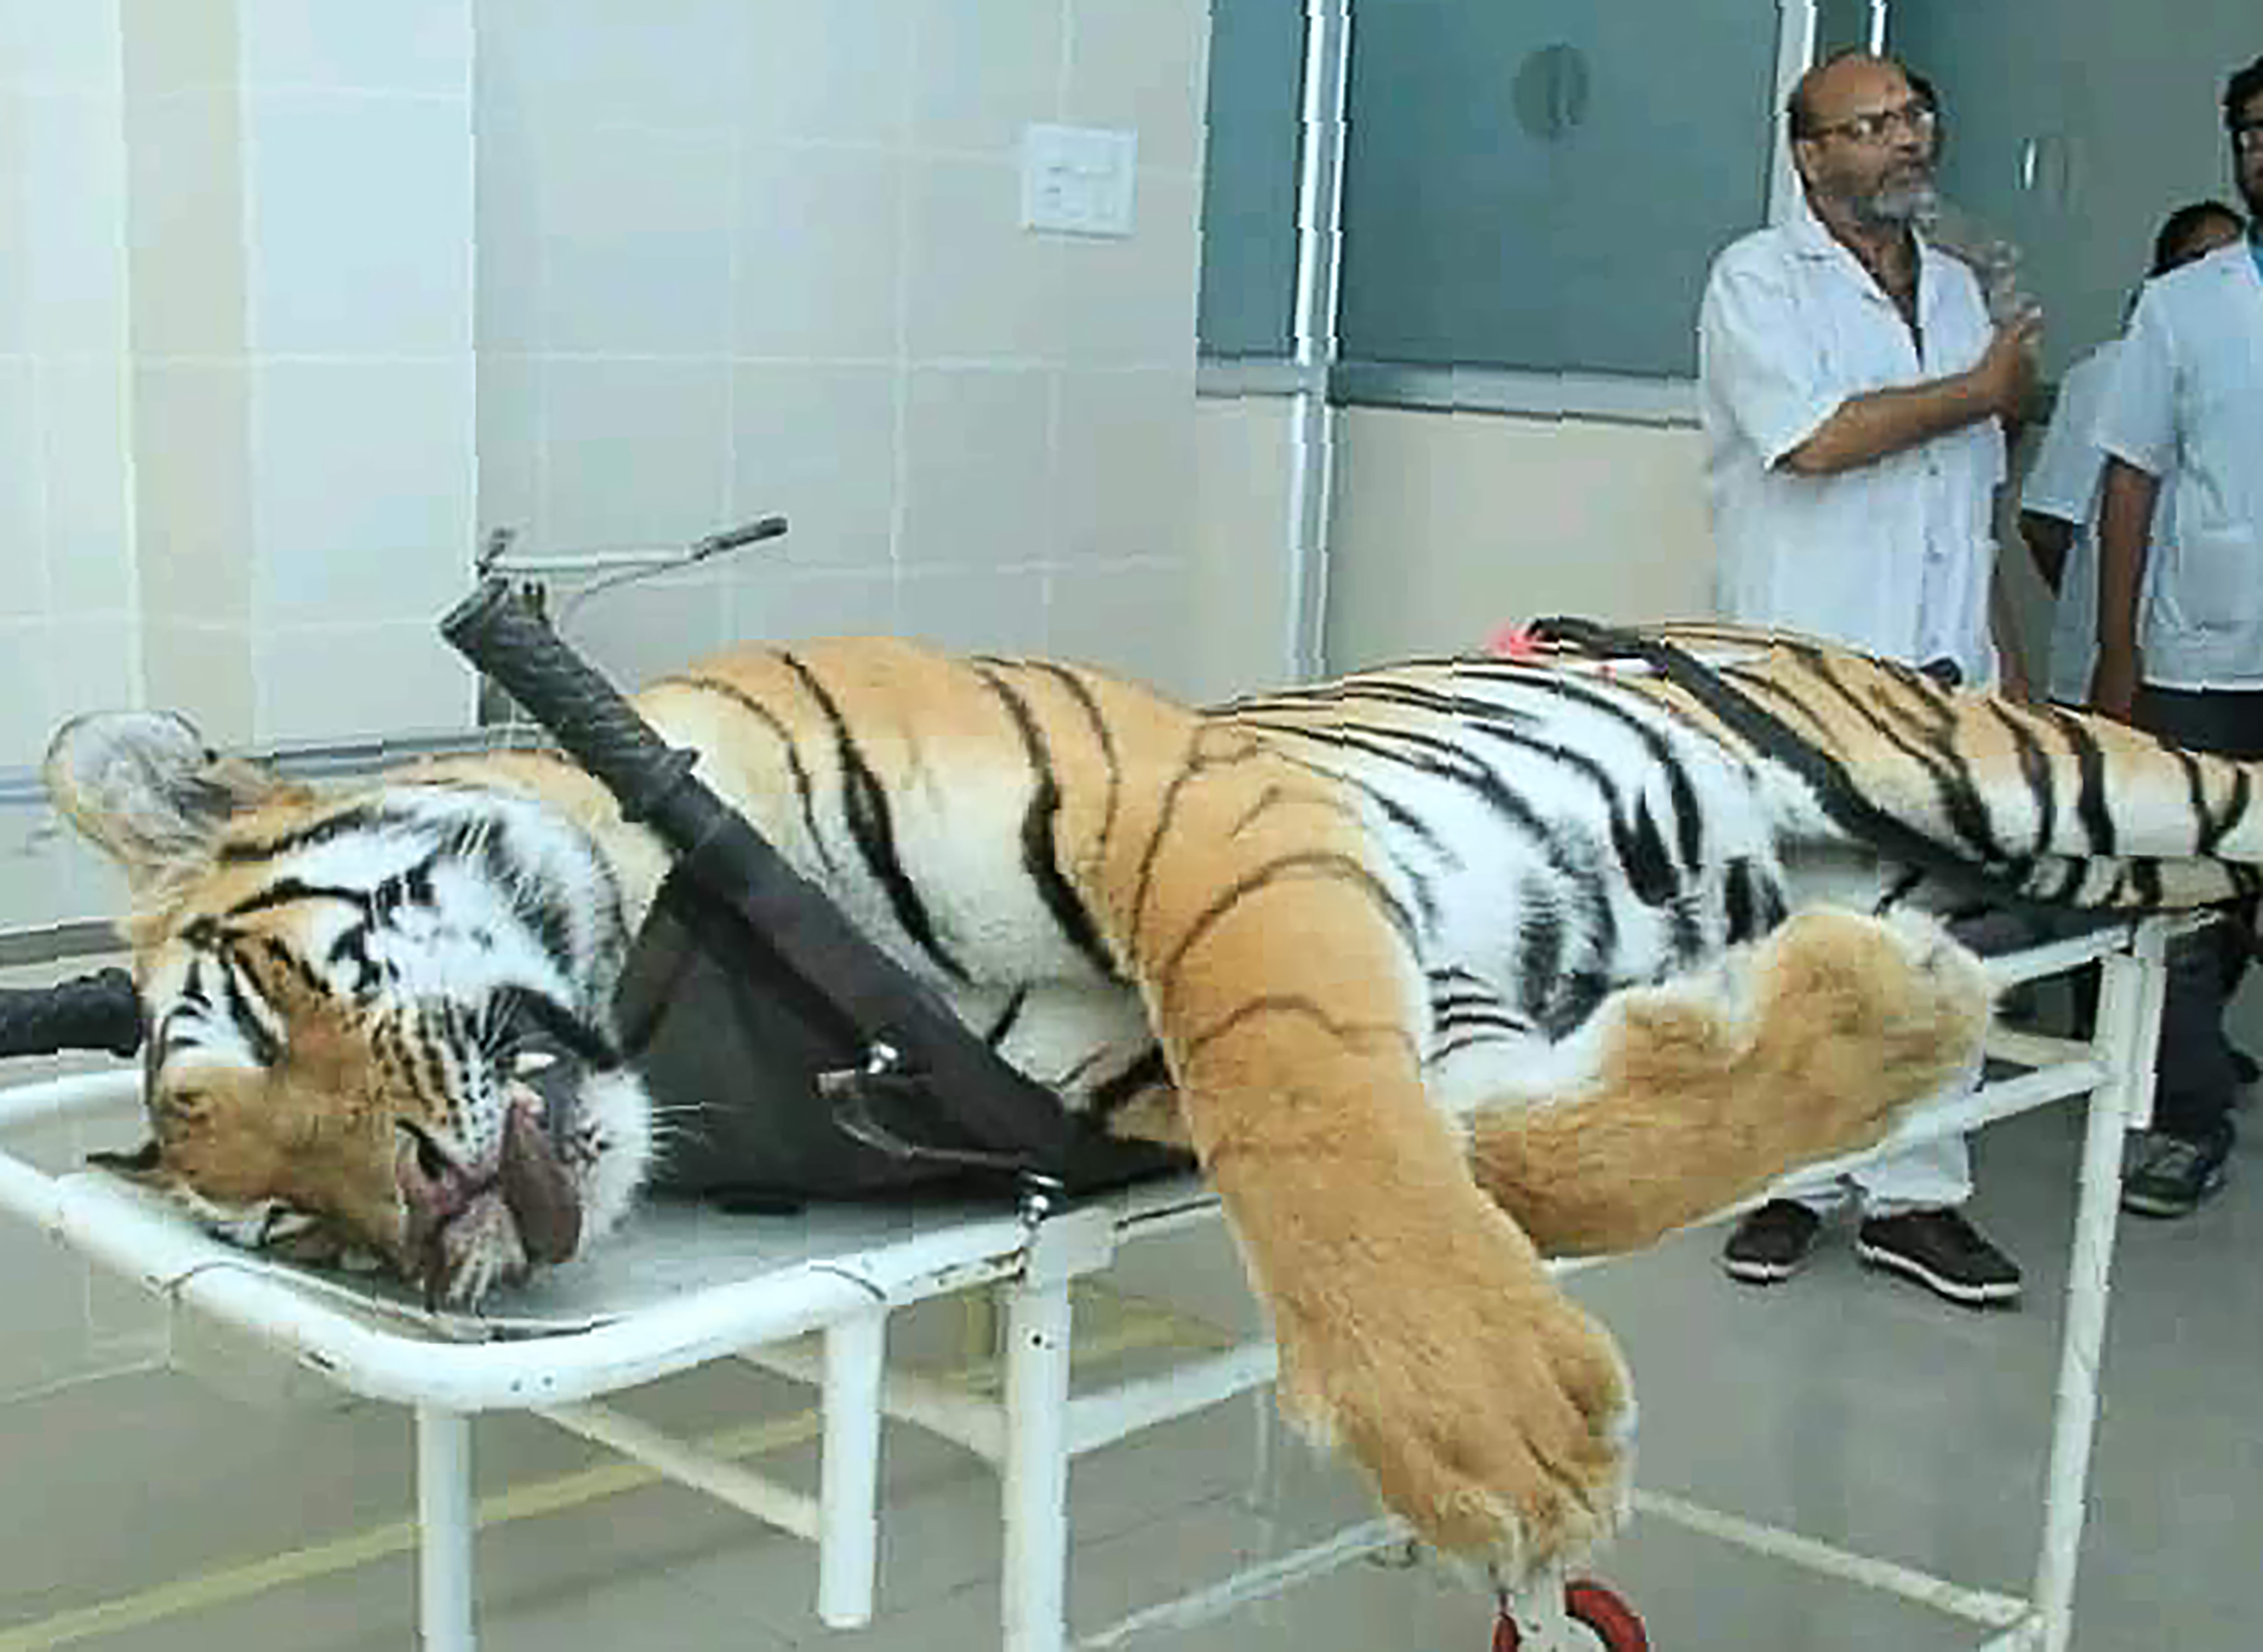 Man Eating Tiger Shot And Killed In India Lured With Calvin Klein